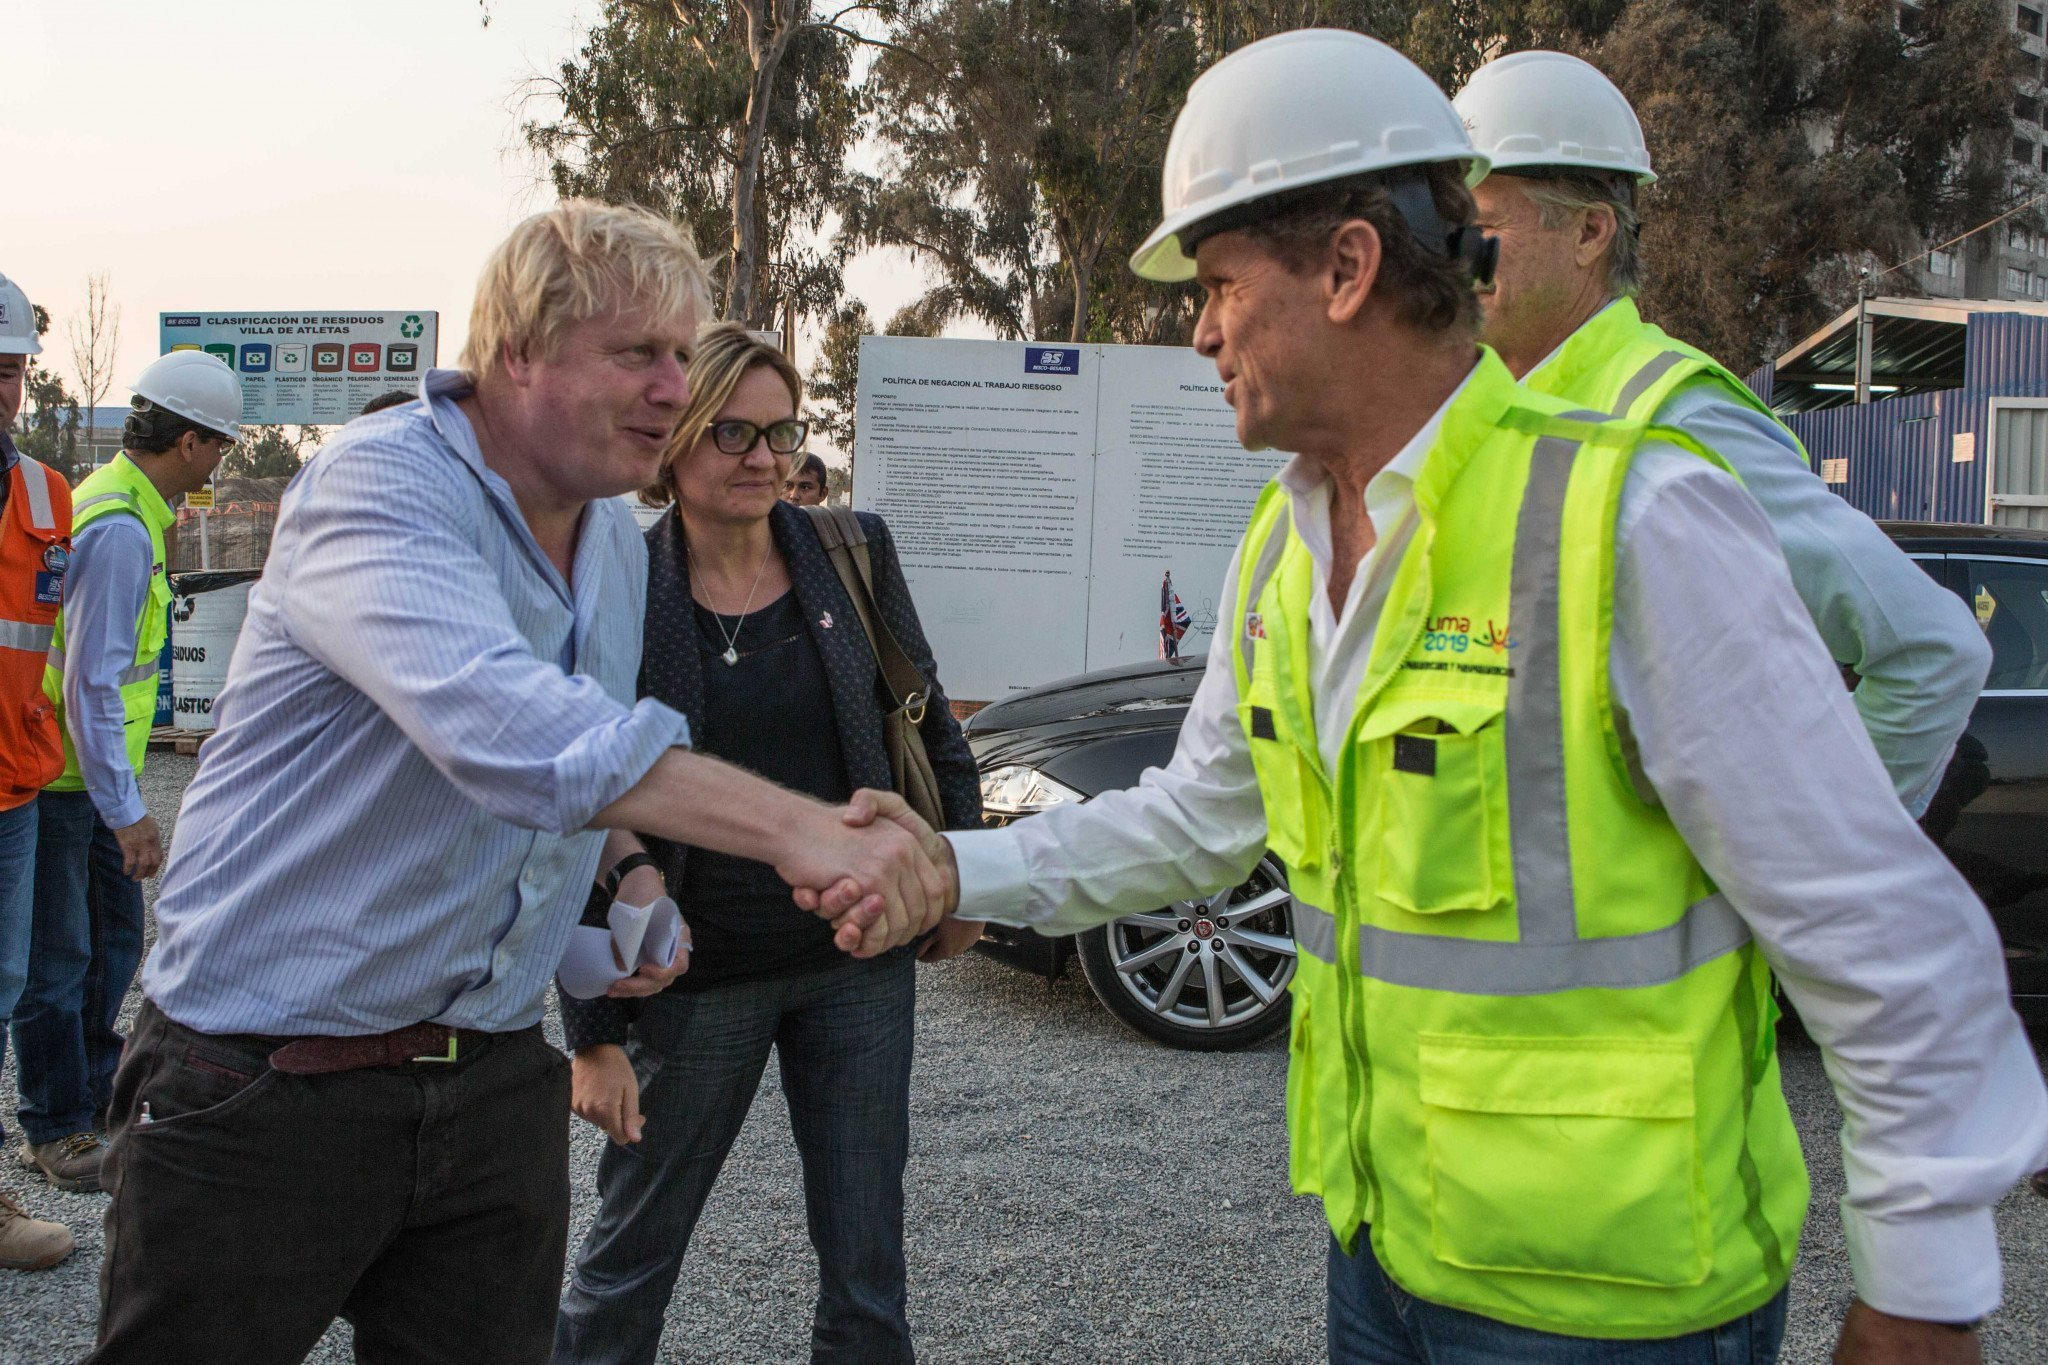 British politicians such as Prime Minister Boris Johnson, then Foreign Secretary, visited Peru in the build up to the 2019 Pan American Games  in Lima where the UK helped with infrastructure projects ©Getty Images